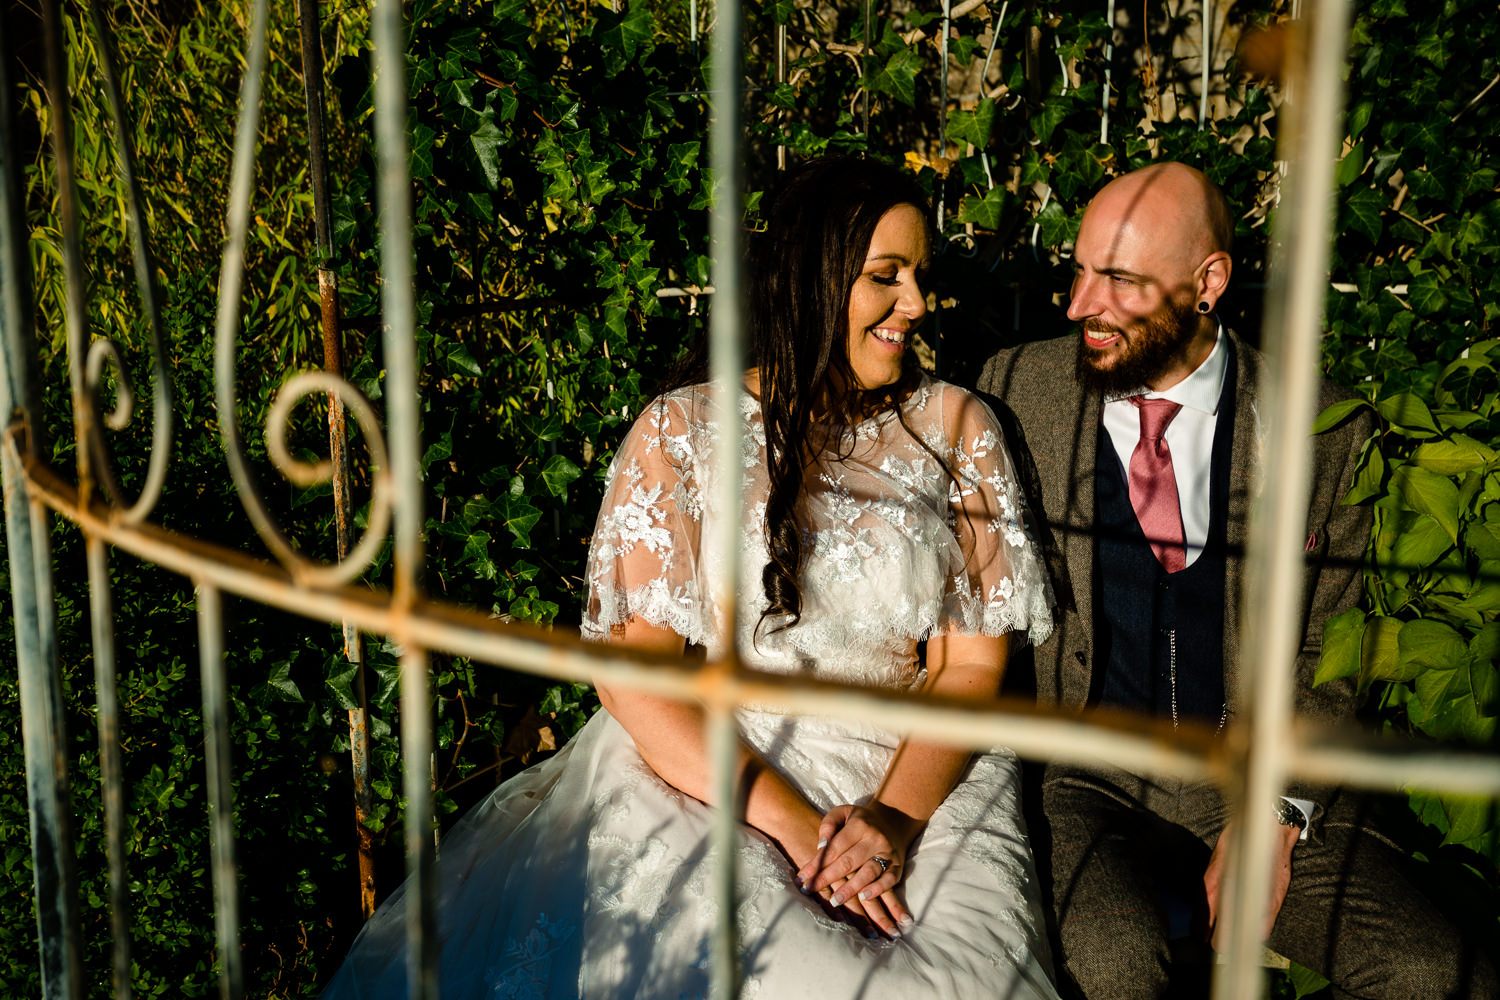 Rochdale wedding photographs at Bella Vista Restaaurant